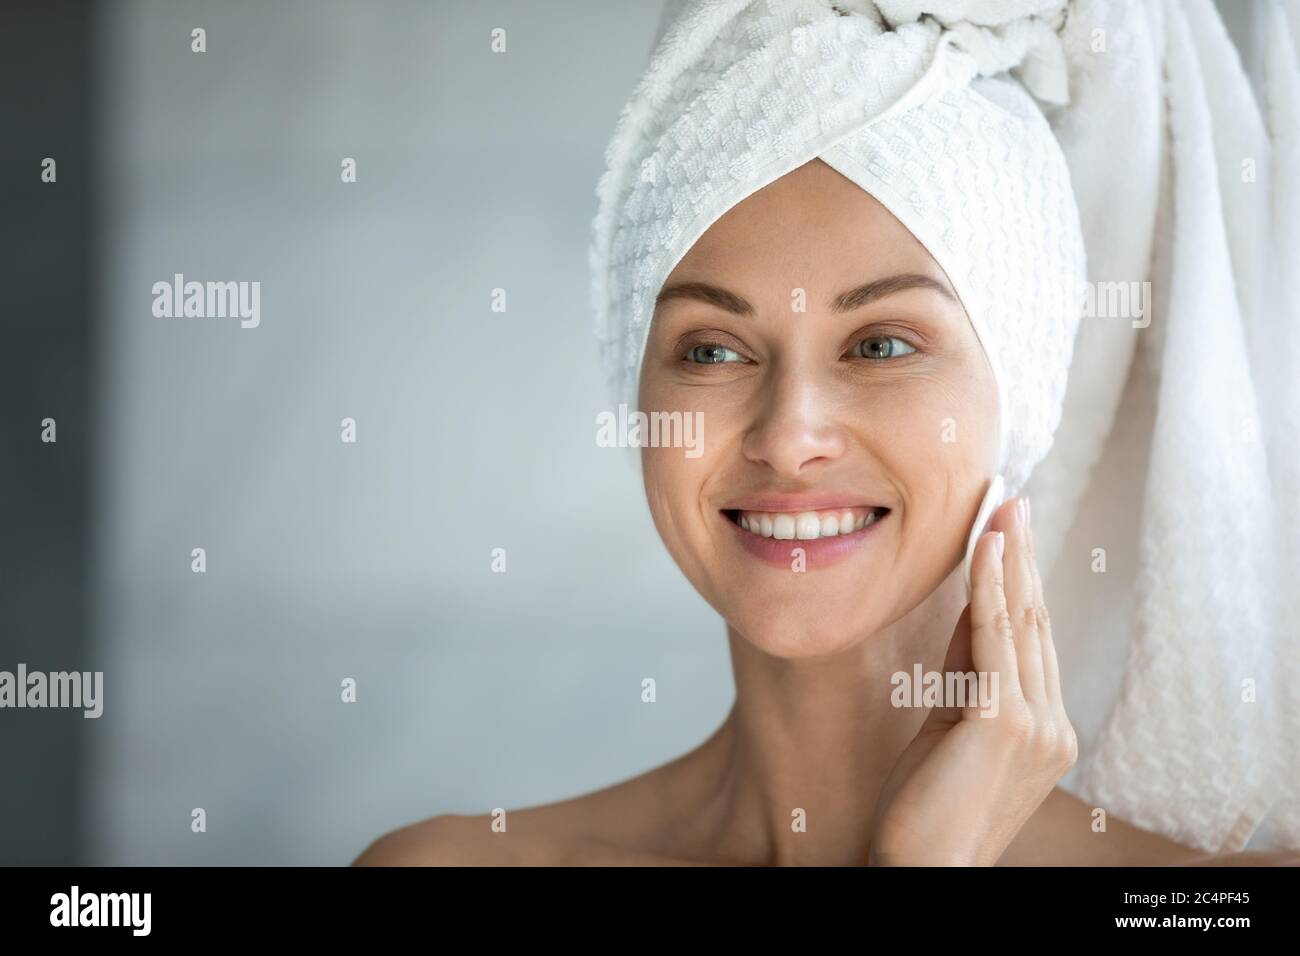 Smiling young woman look in mirror do facial beauty procedures Stock Photo